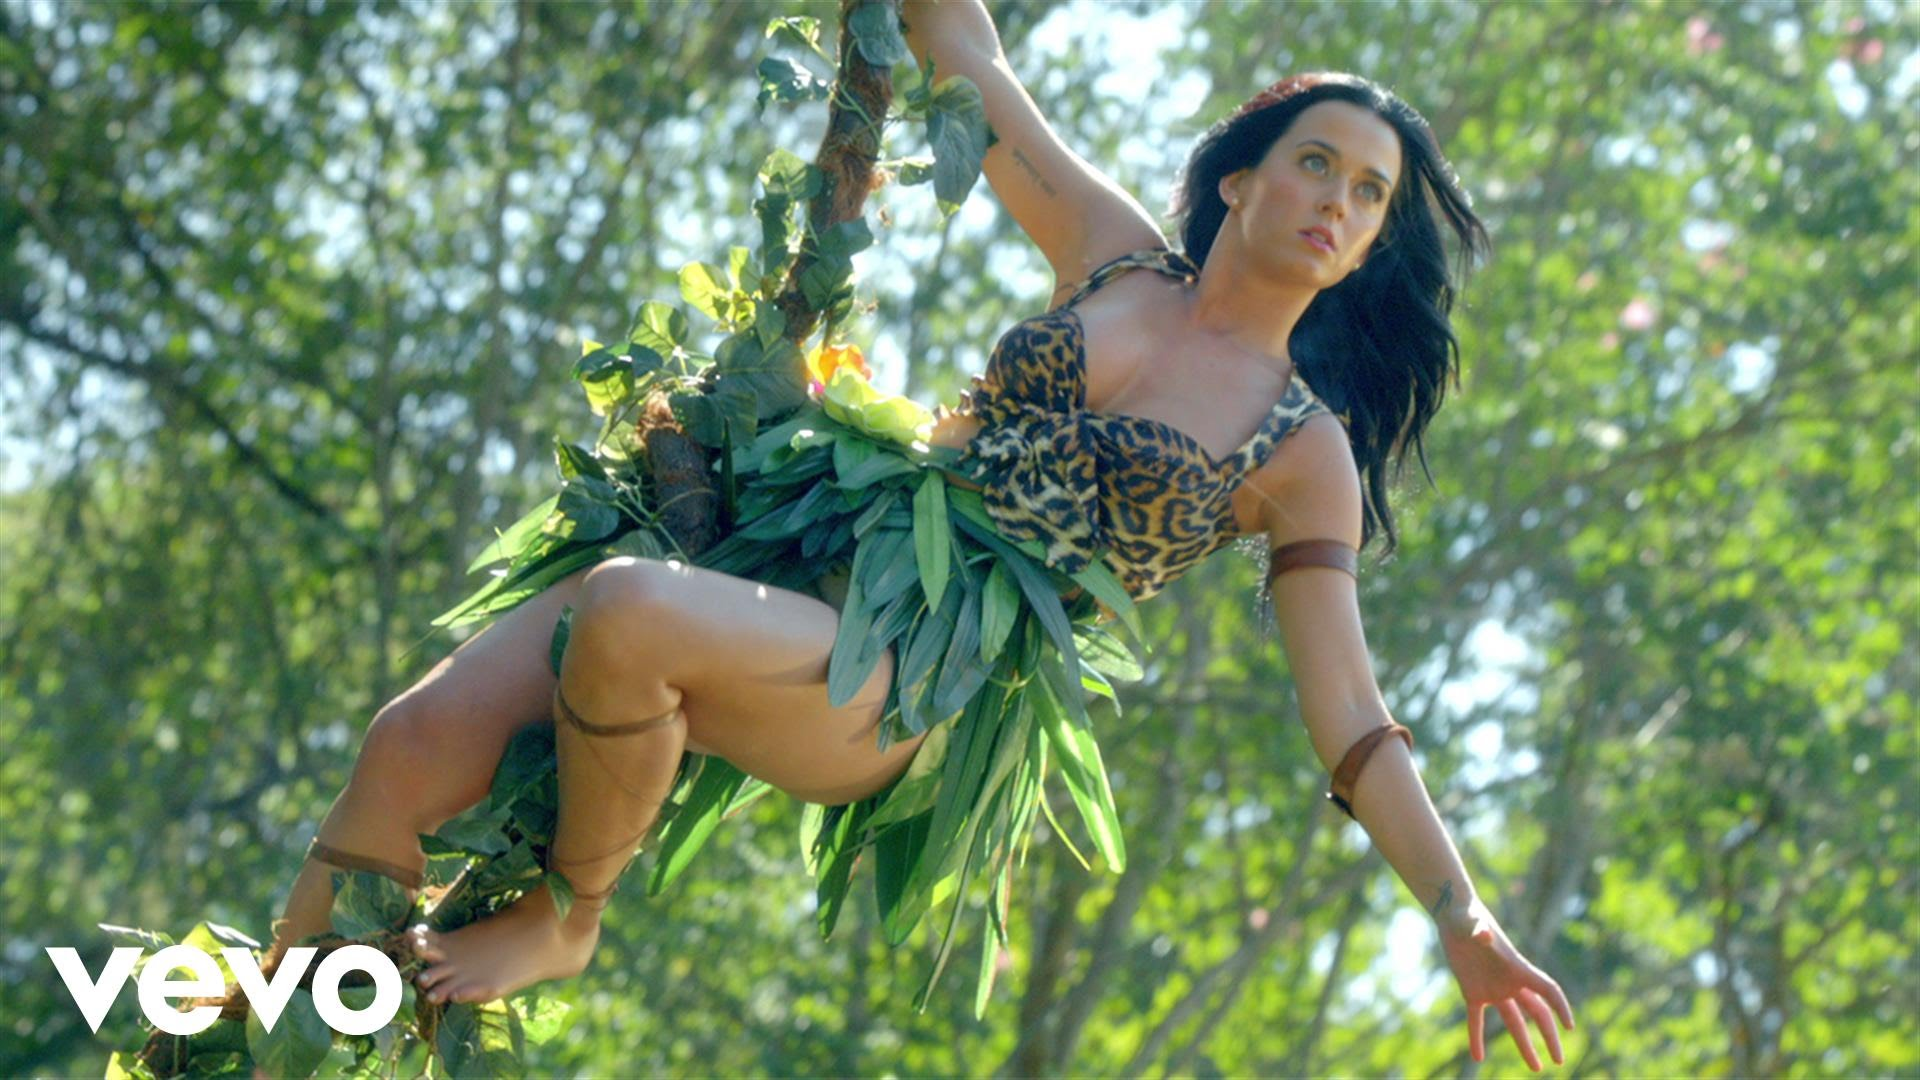 Katy Perry - Roar (Official) 1